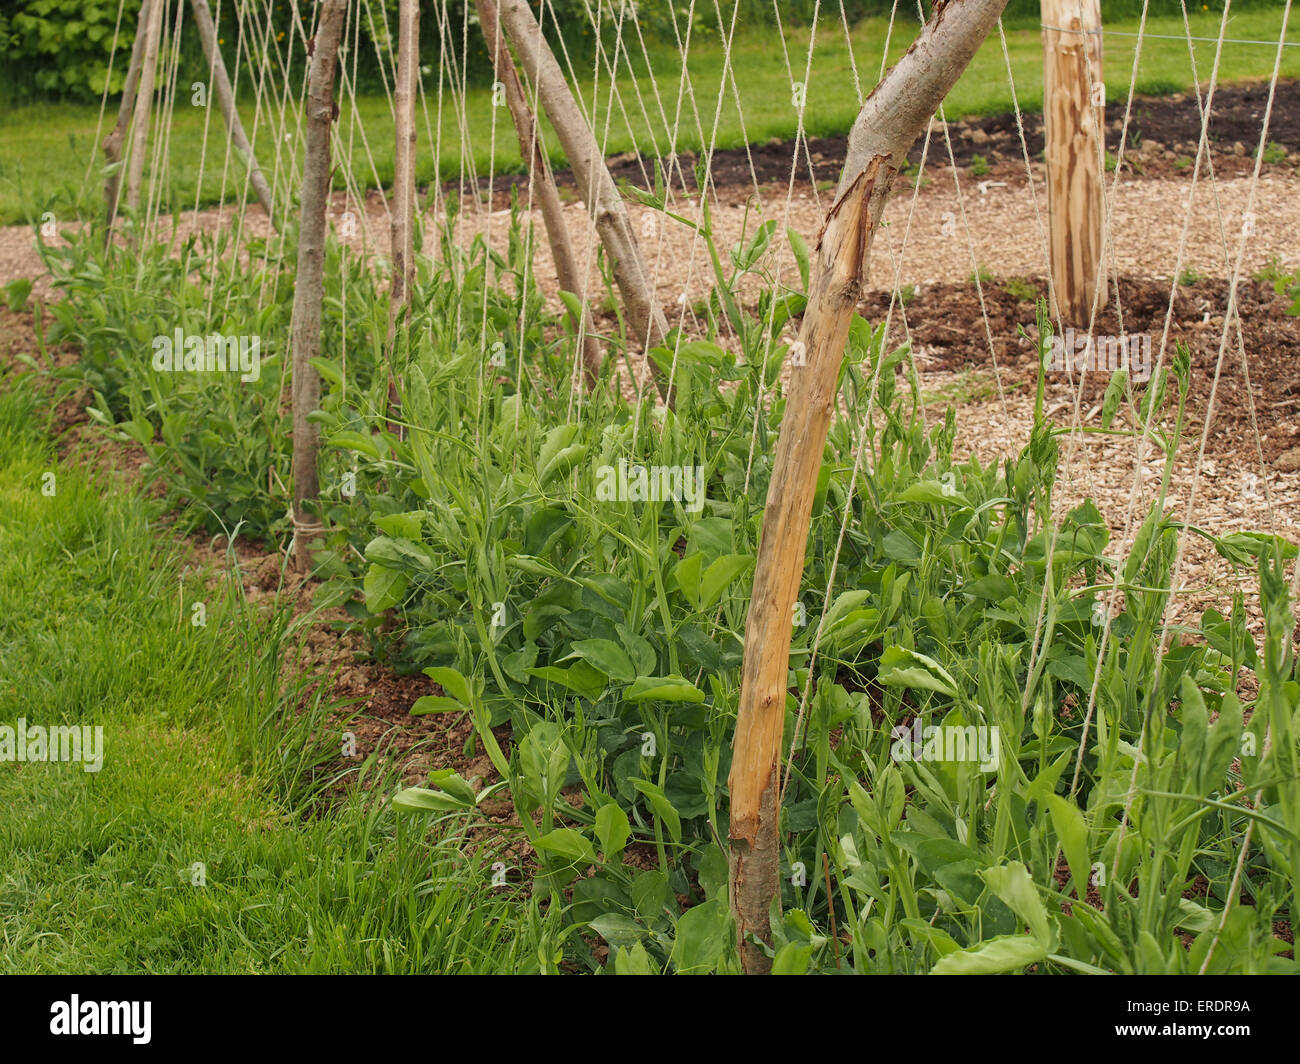 Flourishing Sweet peas on an allotment in springtime growing up wooden and string supports - Stock Image